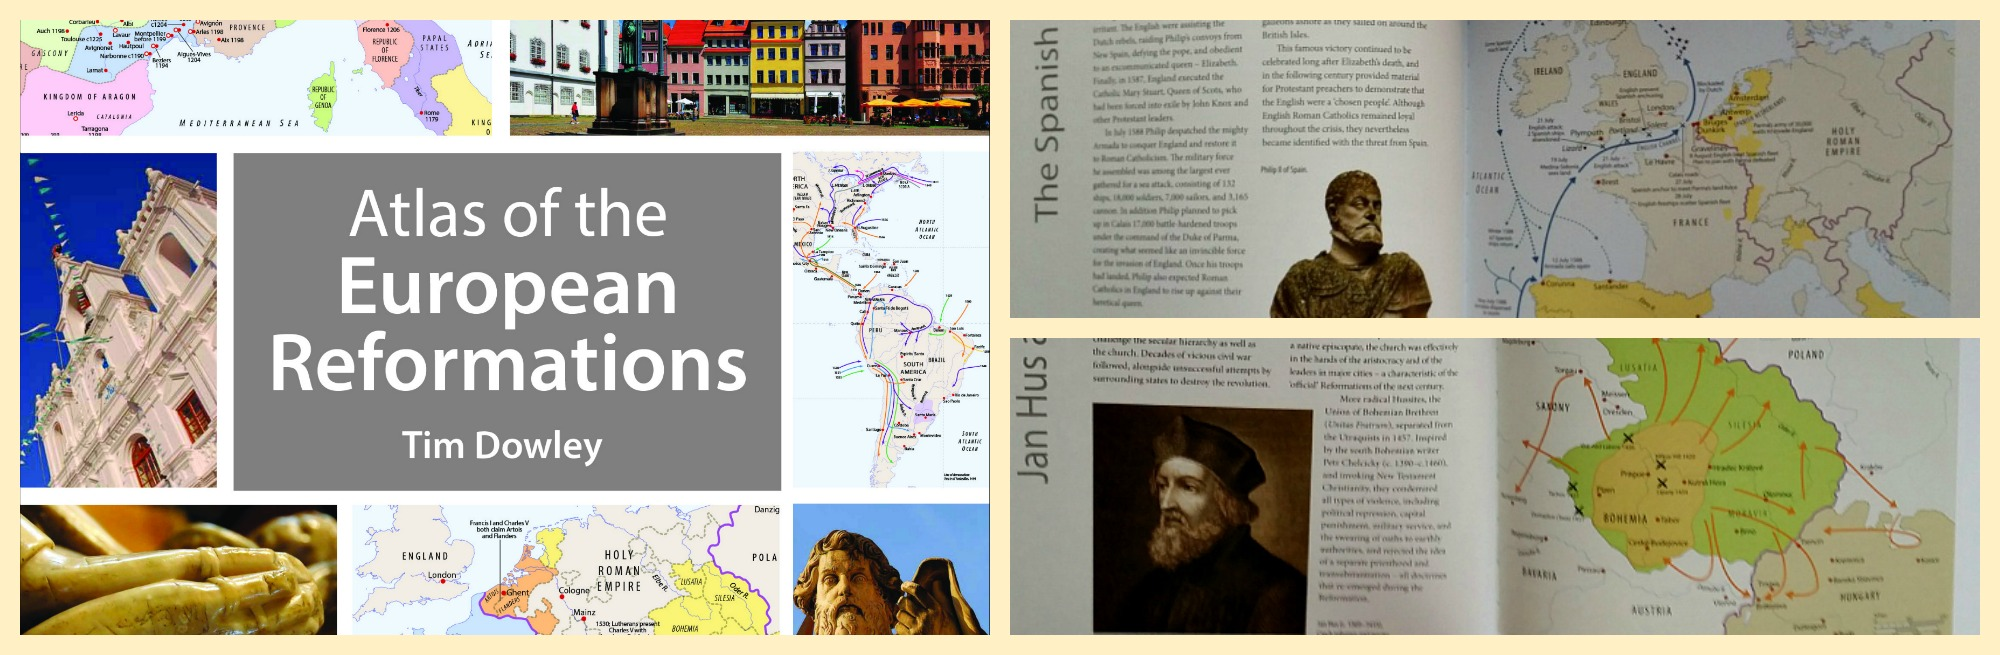 Check out Tim Dowley's Atlas of the European Reformations